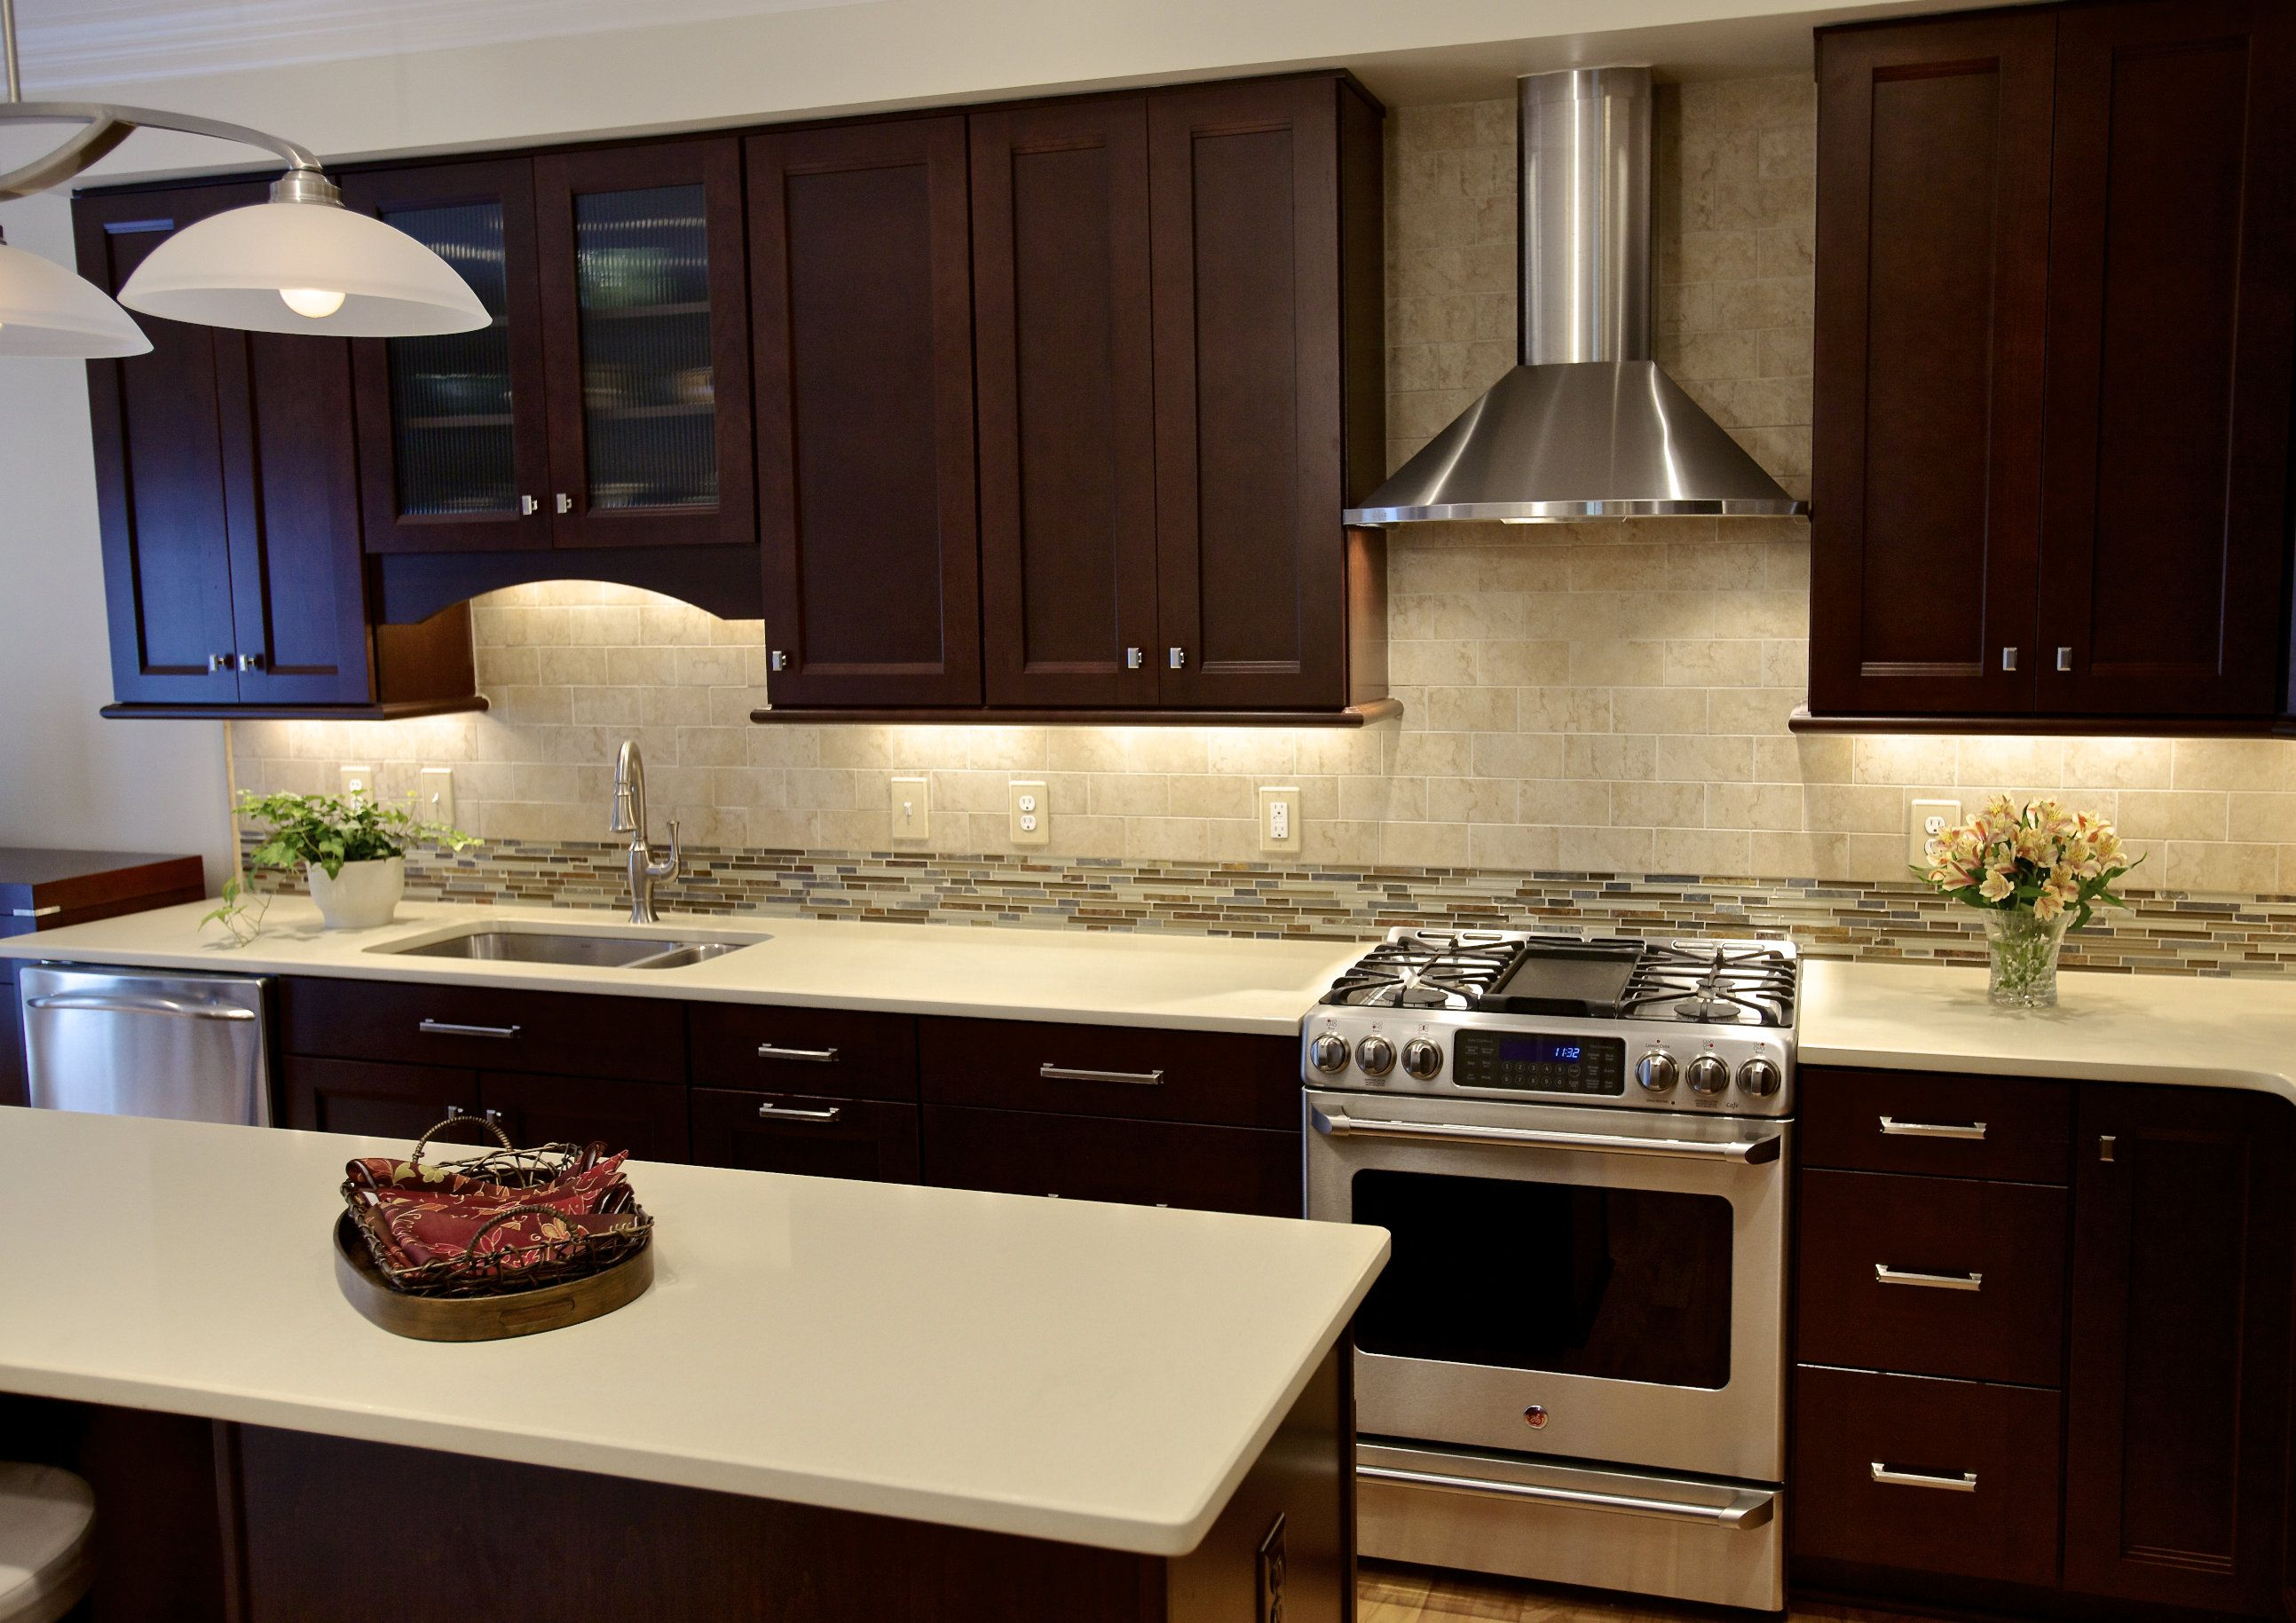 cherry cabinets with quartz countertops | Waypoint Cabinets with a cherry  bordeaux finish and CaesarStone quartz